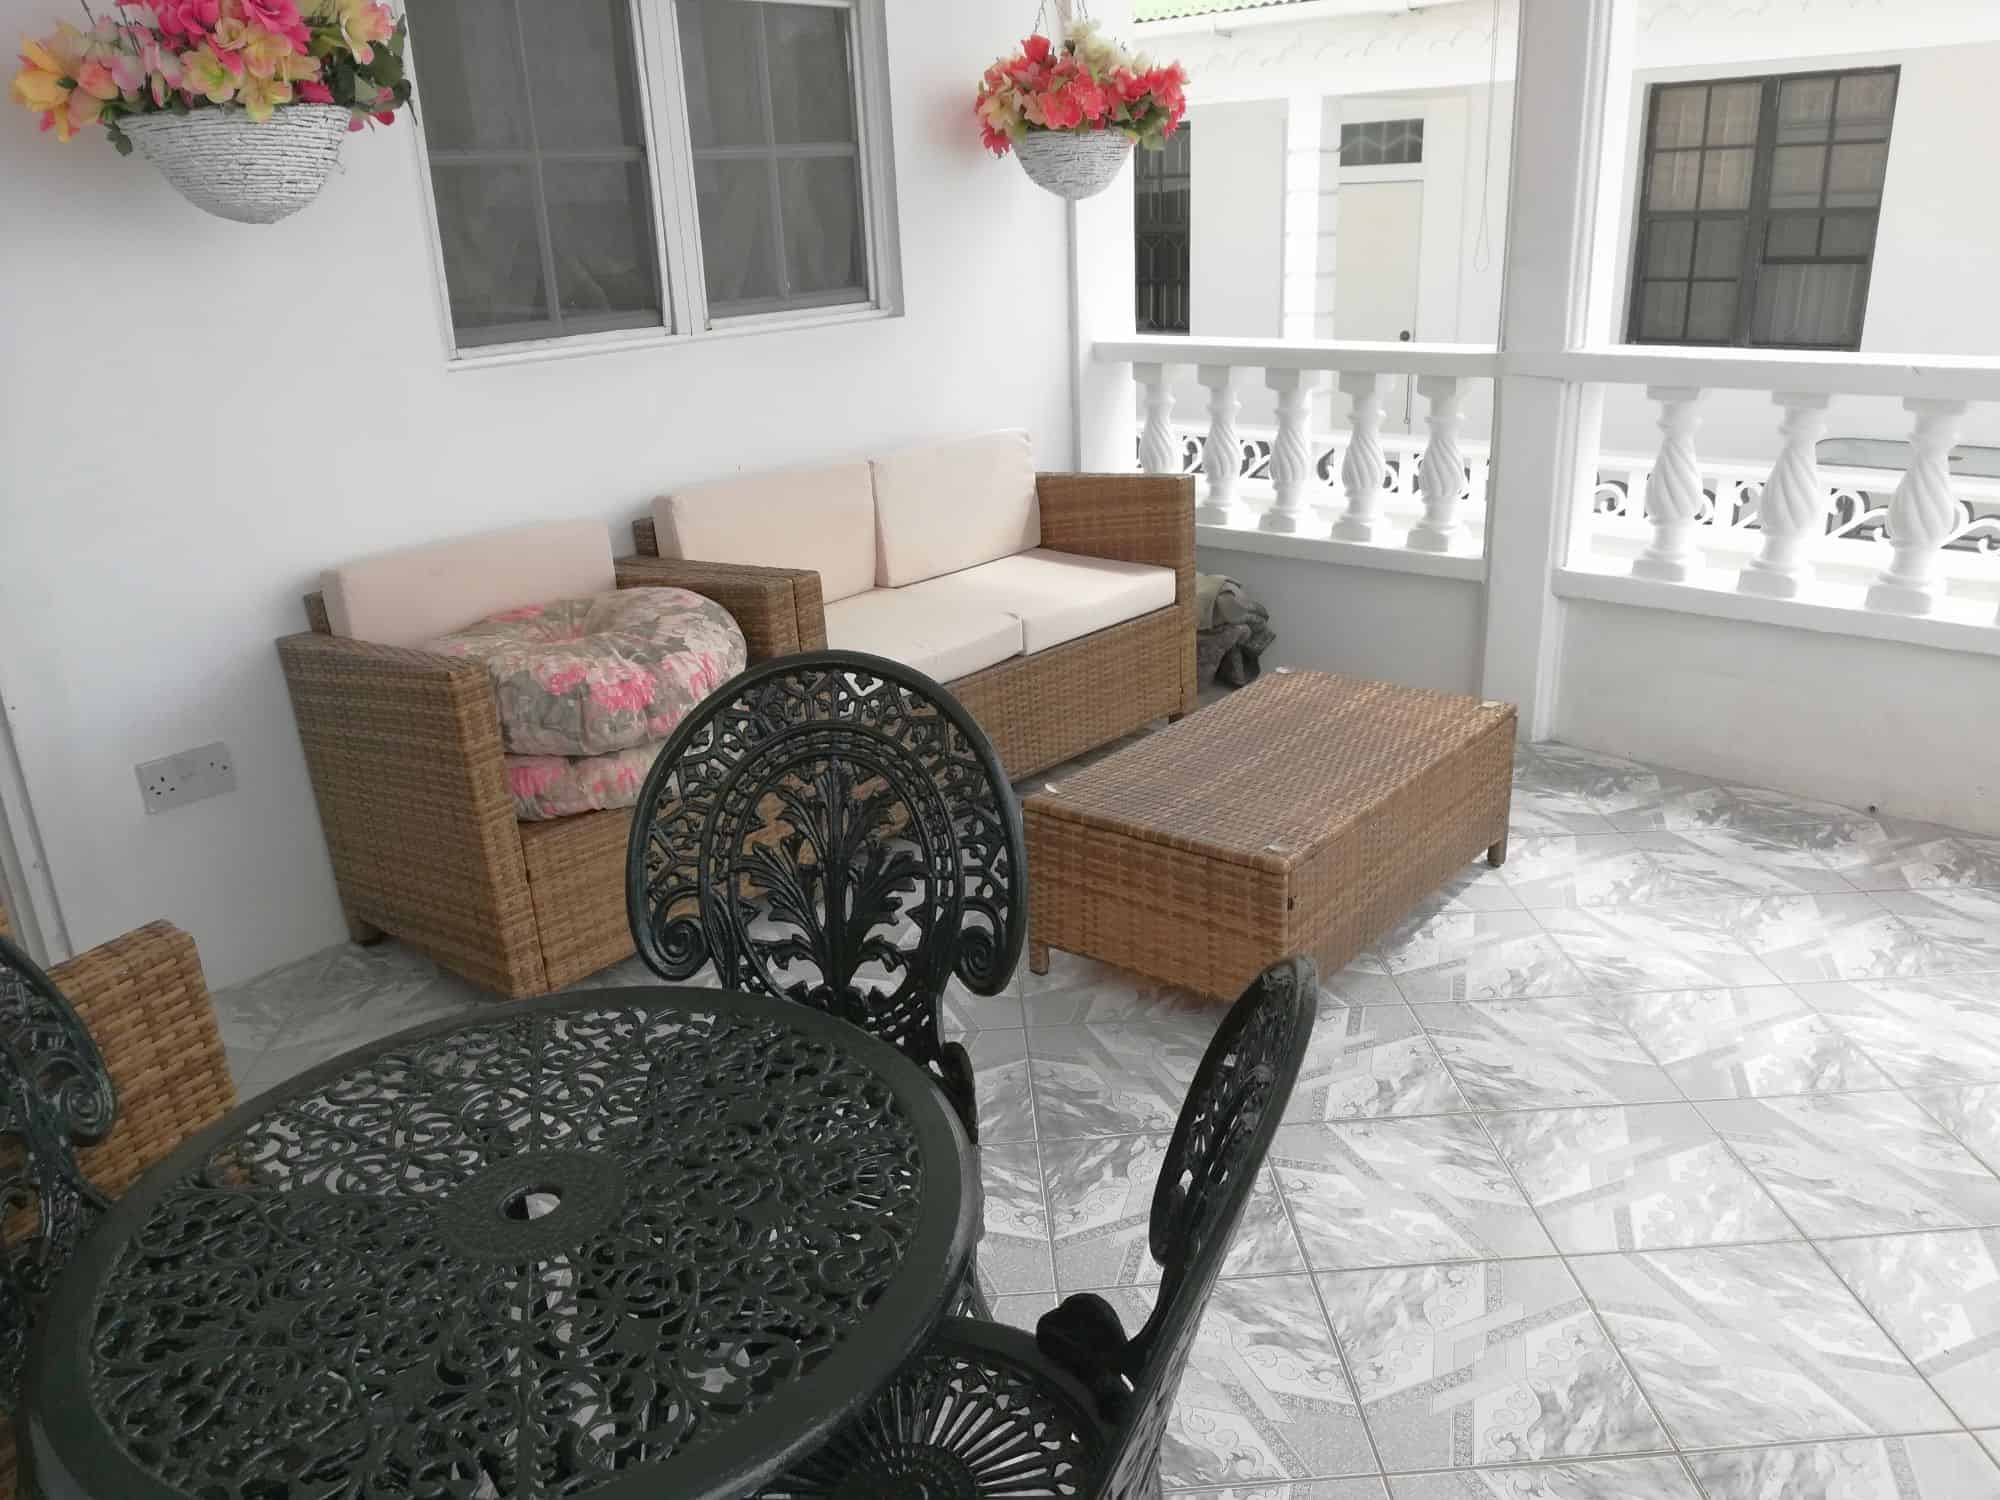 Veranda of the house for sale in Checkhall